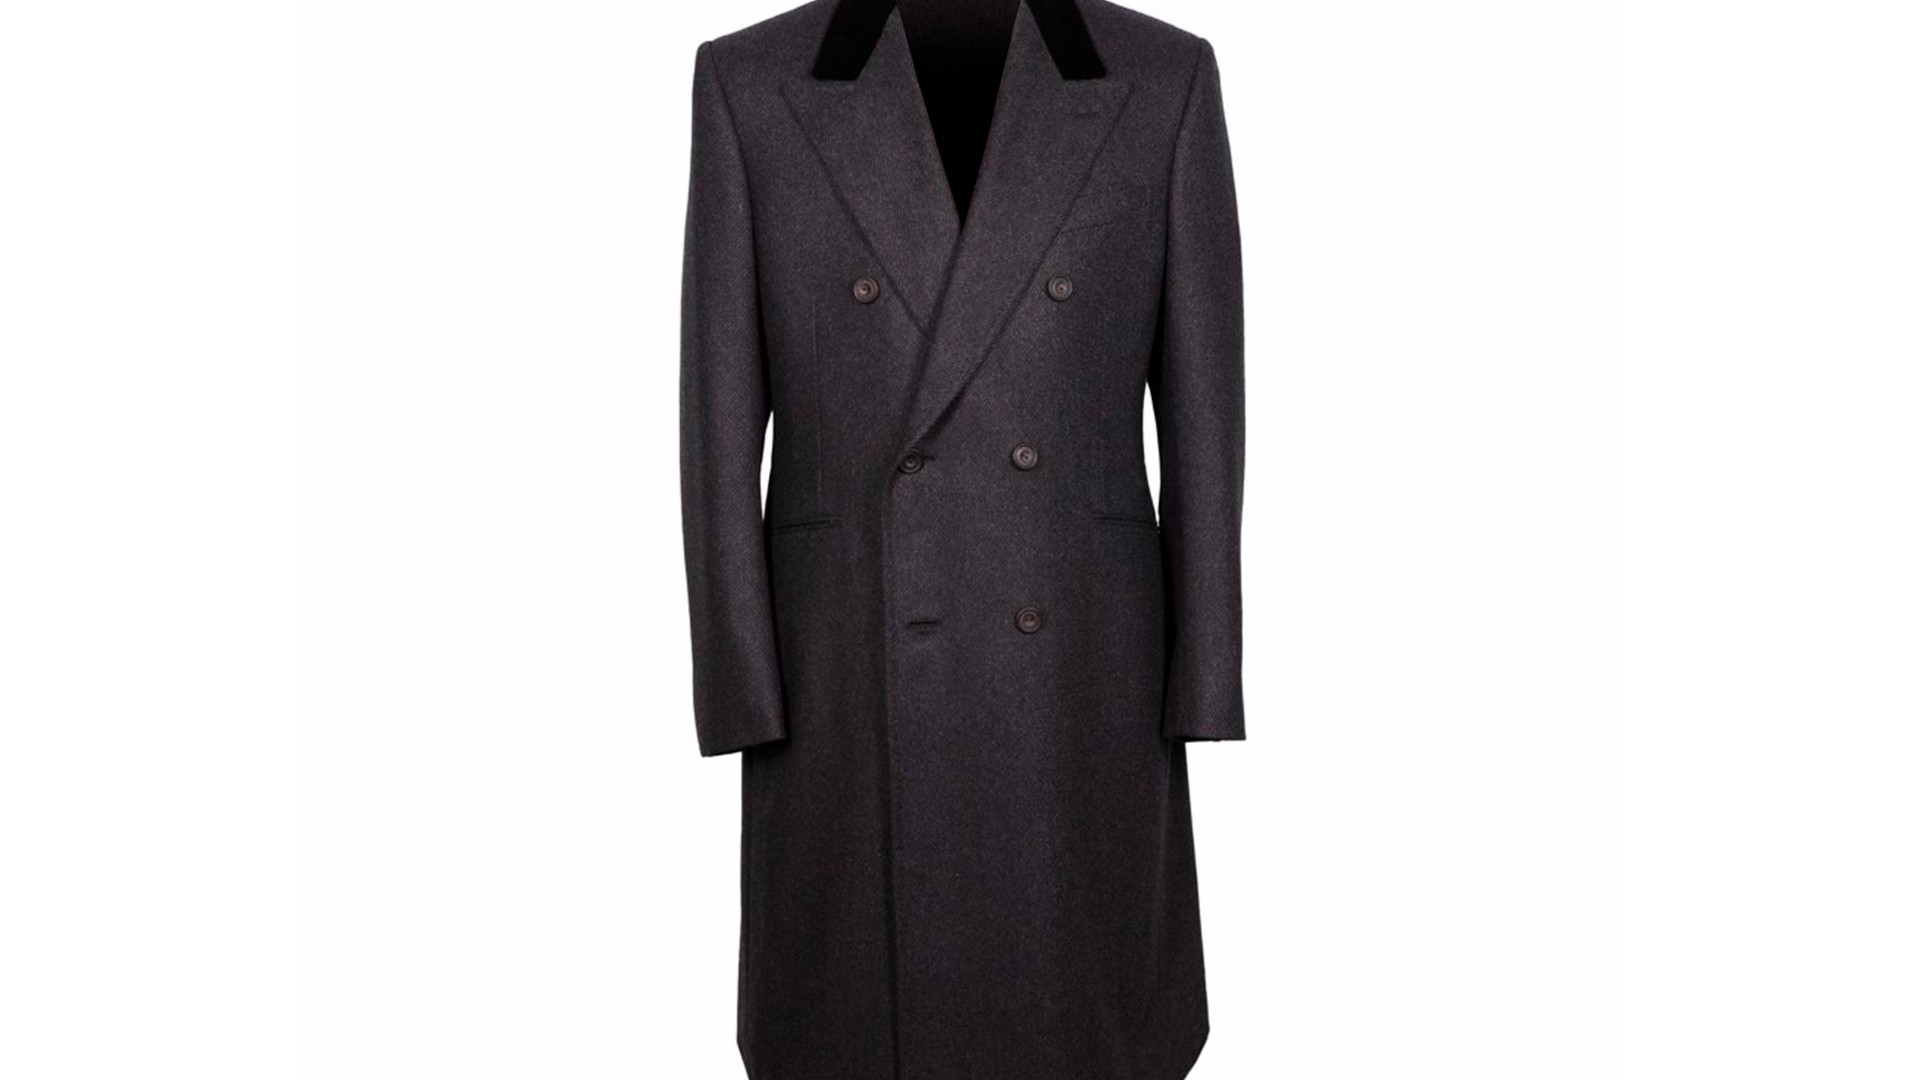 The Double-Breasted Jacket: Huntsman King Coat